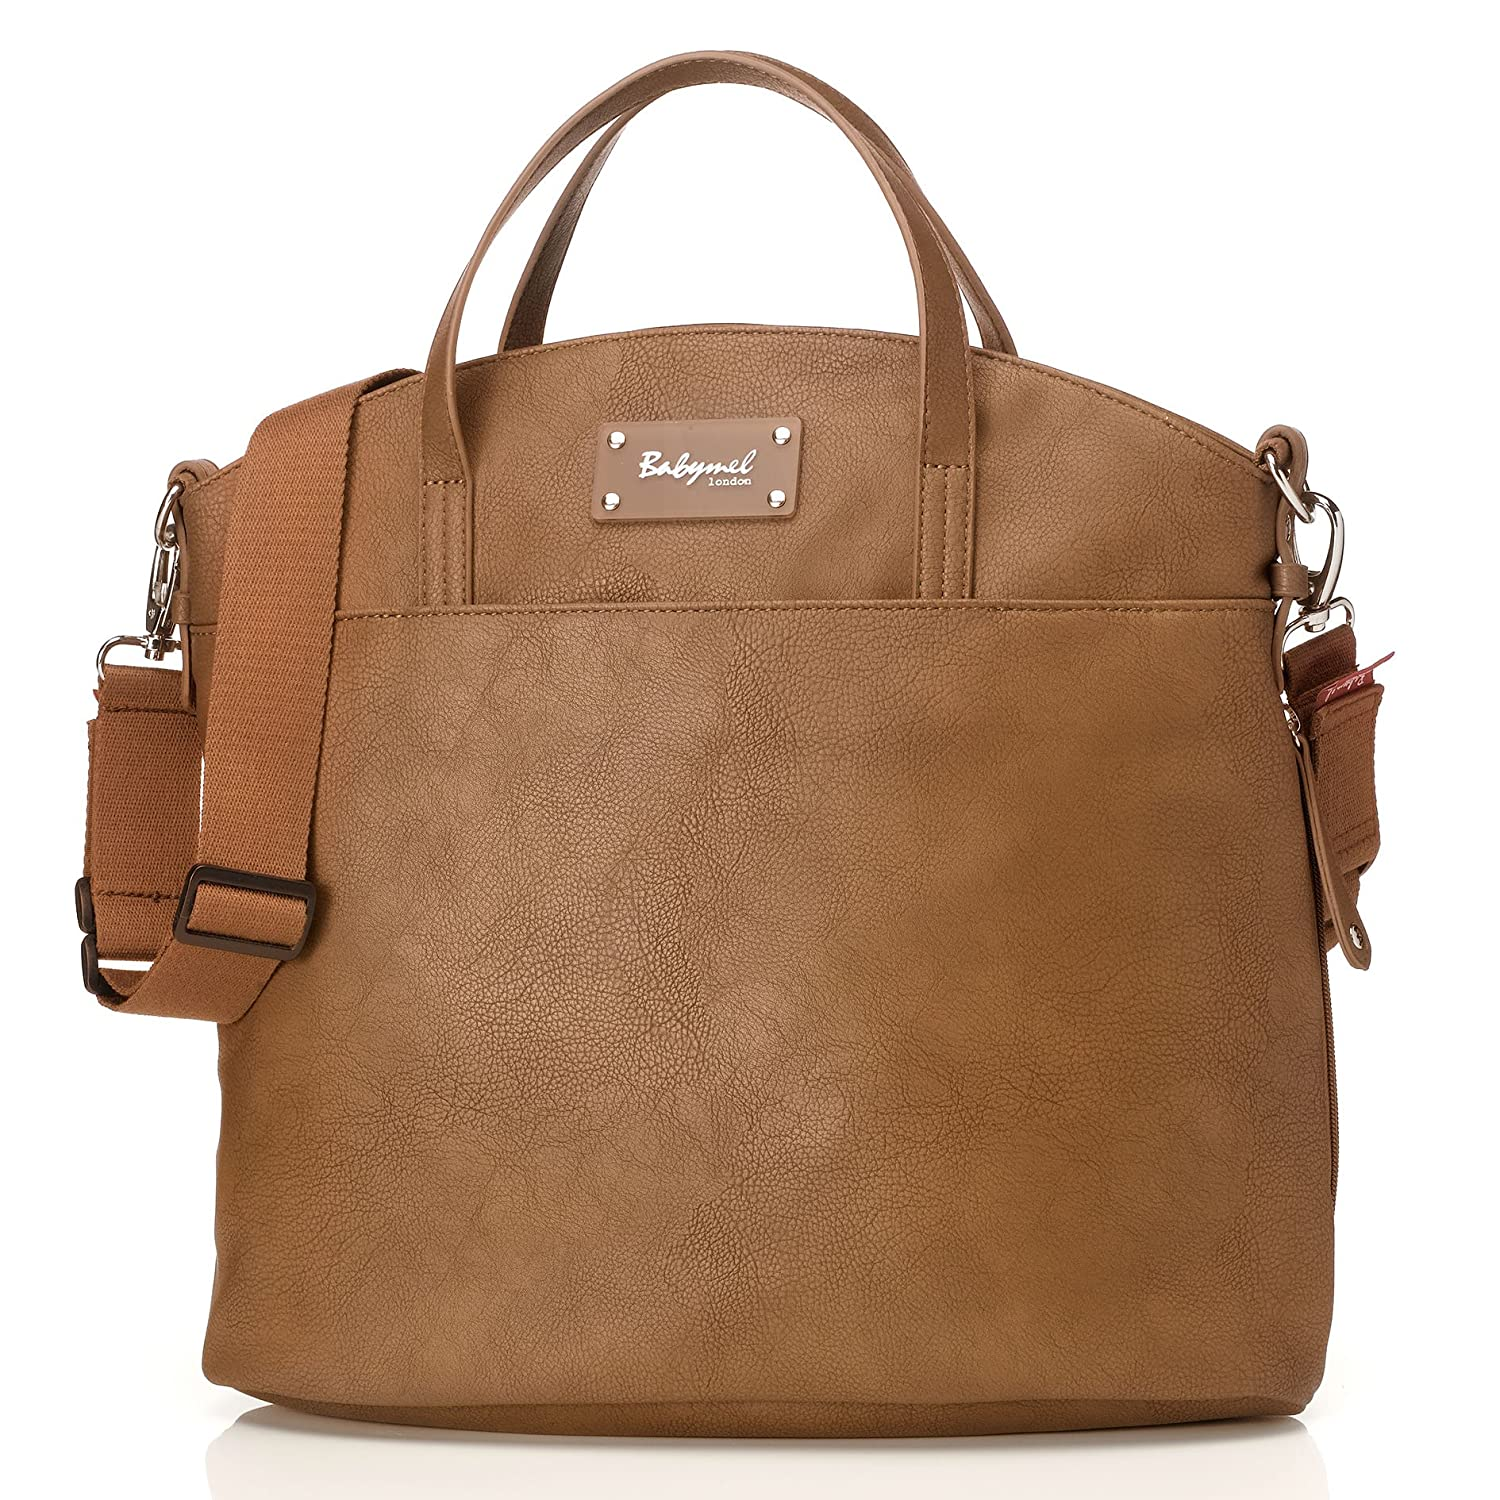 週間売れ筋 Babymel B00WUKPQIE Grace Faux Leather Satchel Diaper Bag, Satchel Tan Diaper by Babymel B00WUKPQIE, 配管材料プロ トキワ:778eb365 --- arianechie.dominiotemporario.com